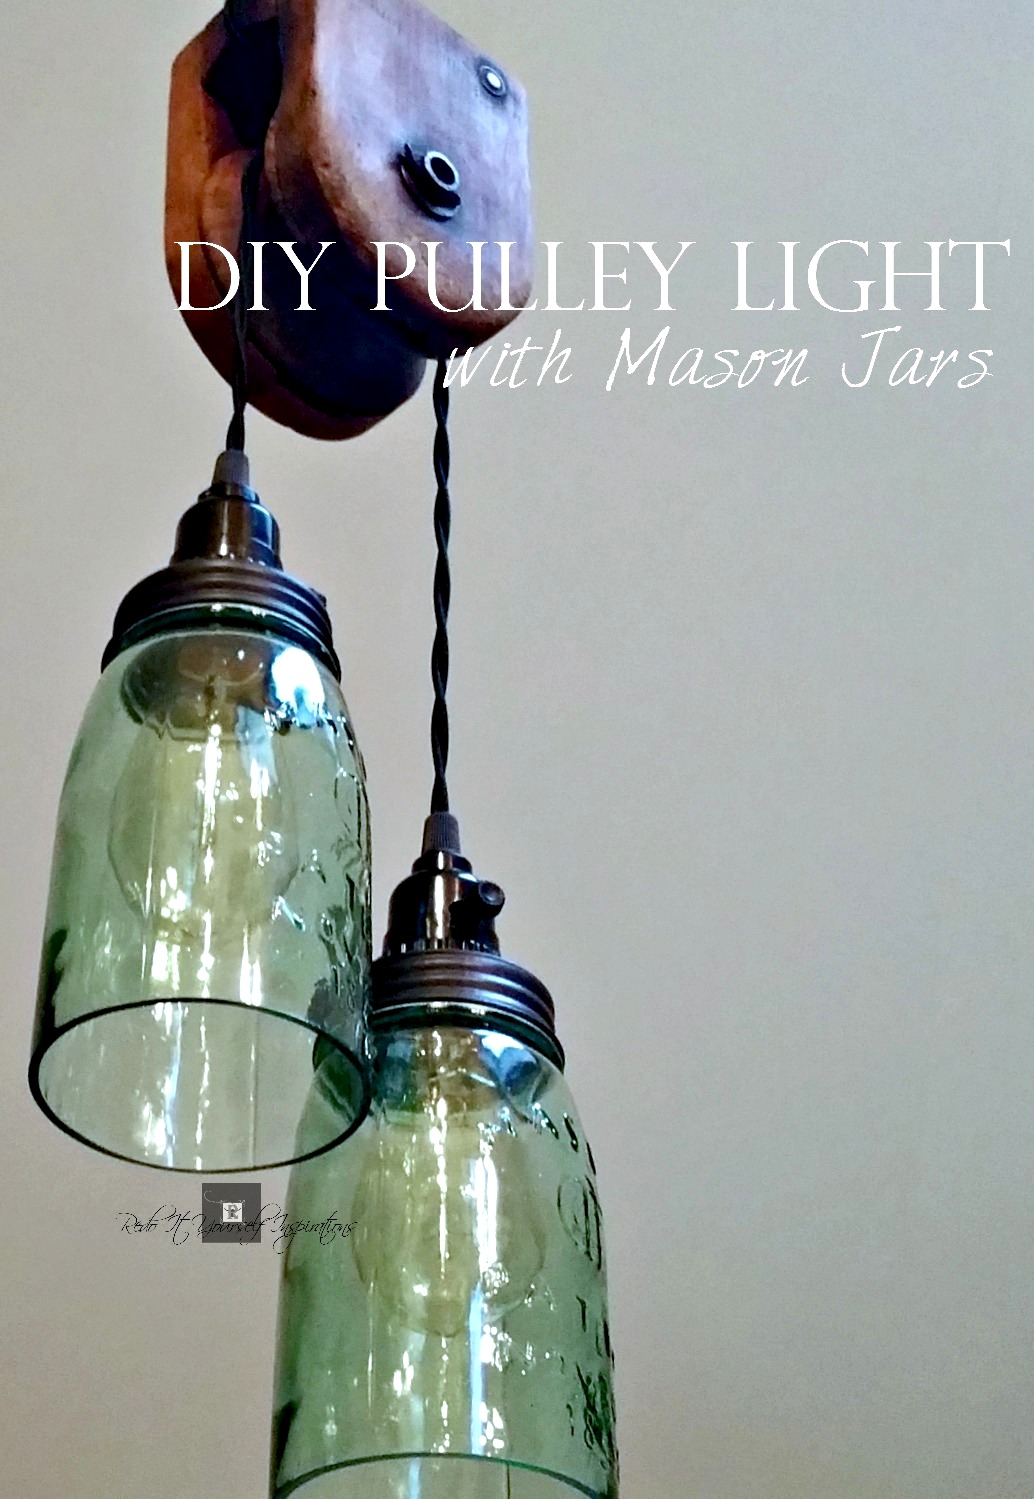 DIY Pulley Light with Mason Jars by Do It Yourself Inspirations, featured on Funky Junk Interiors